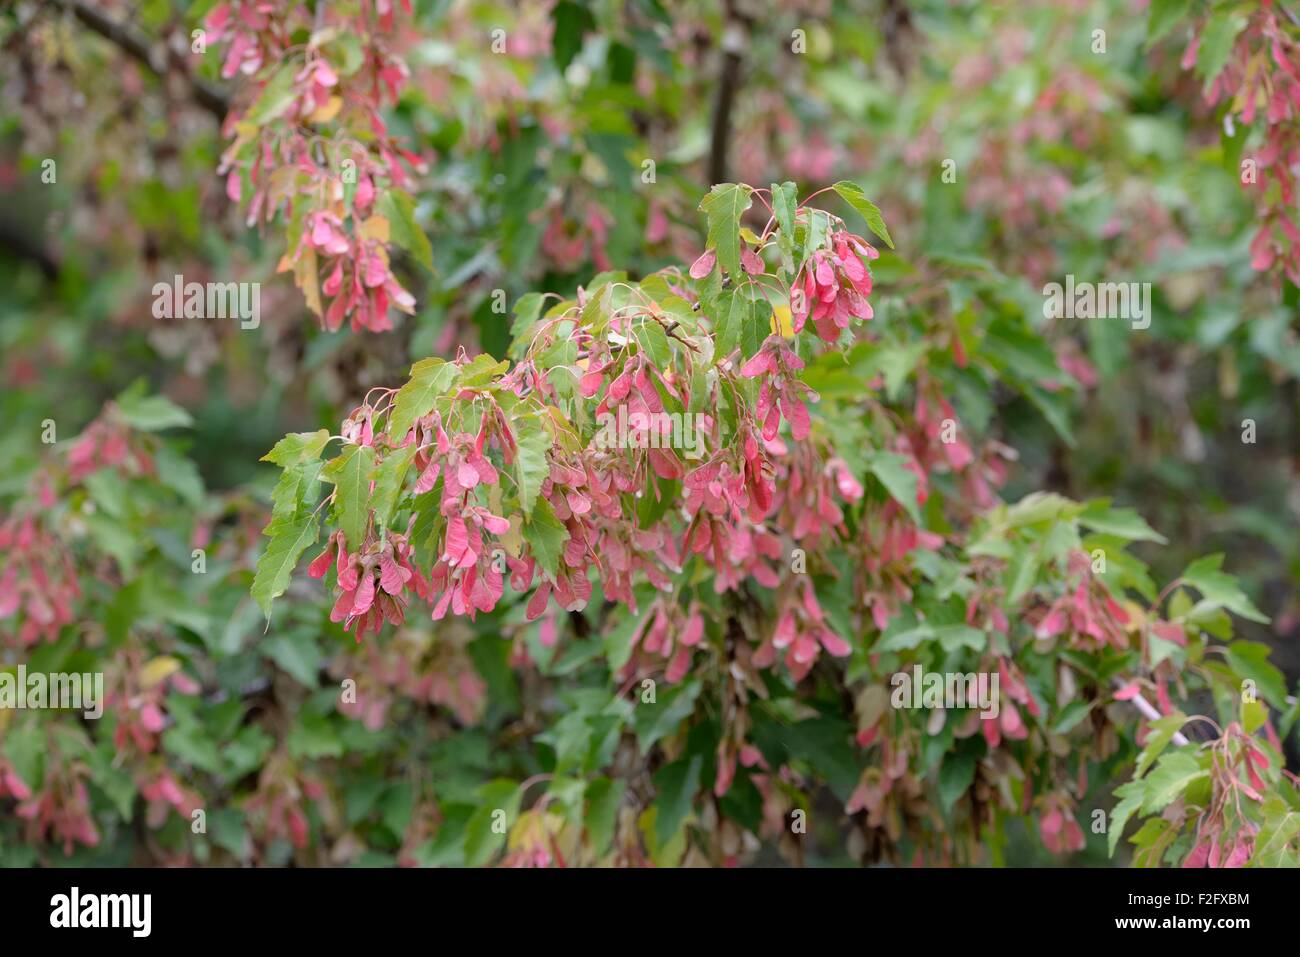 Reddish Pink Samaras Seeds And Green Leaves Hanging From A